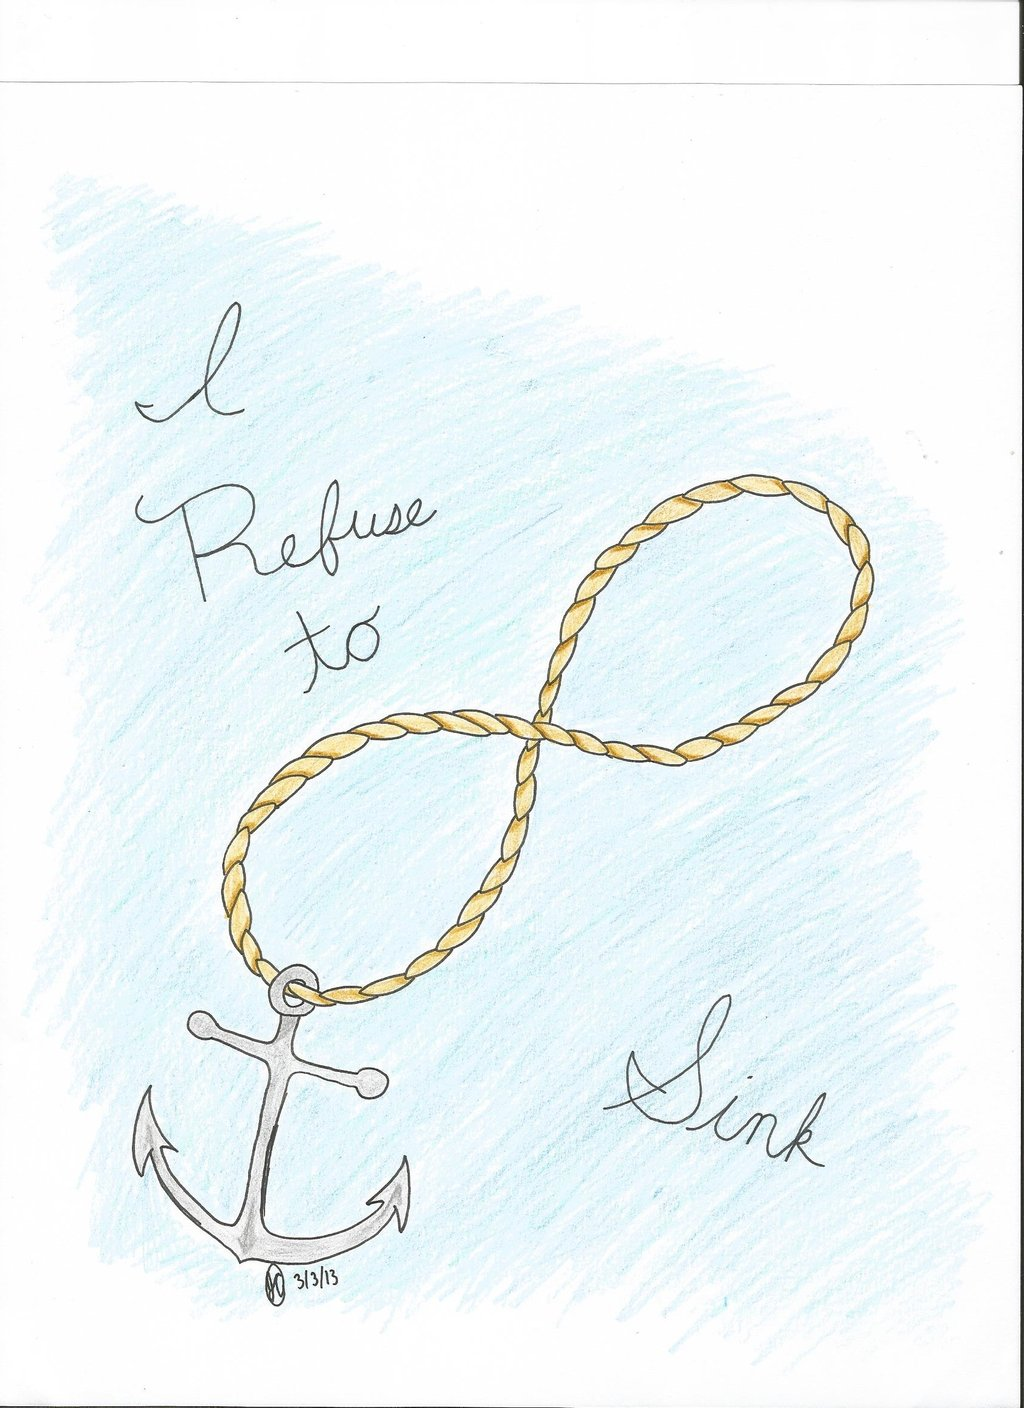 Drawn anchor infinity sign Infinity Pictures Images Wallpaper Infinity